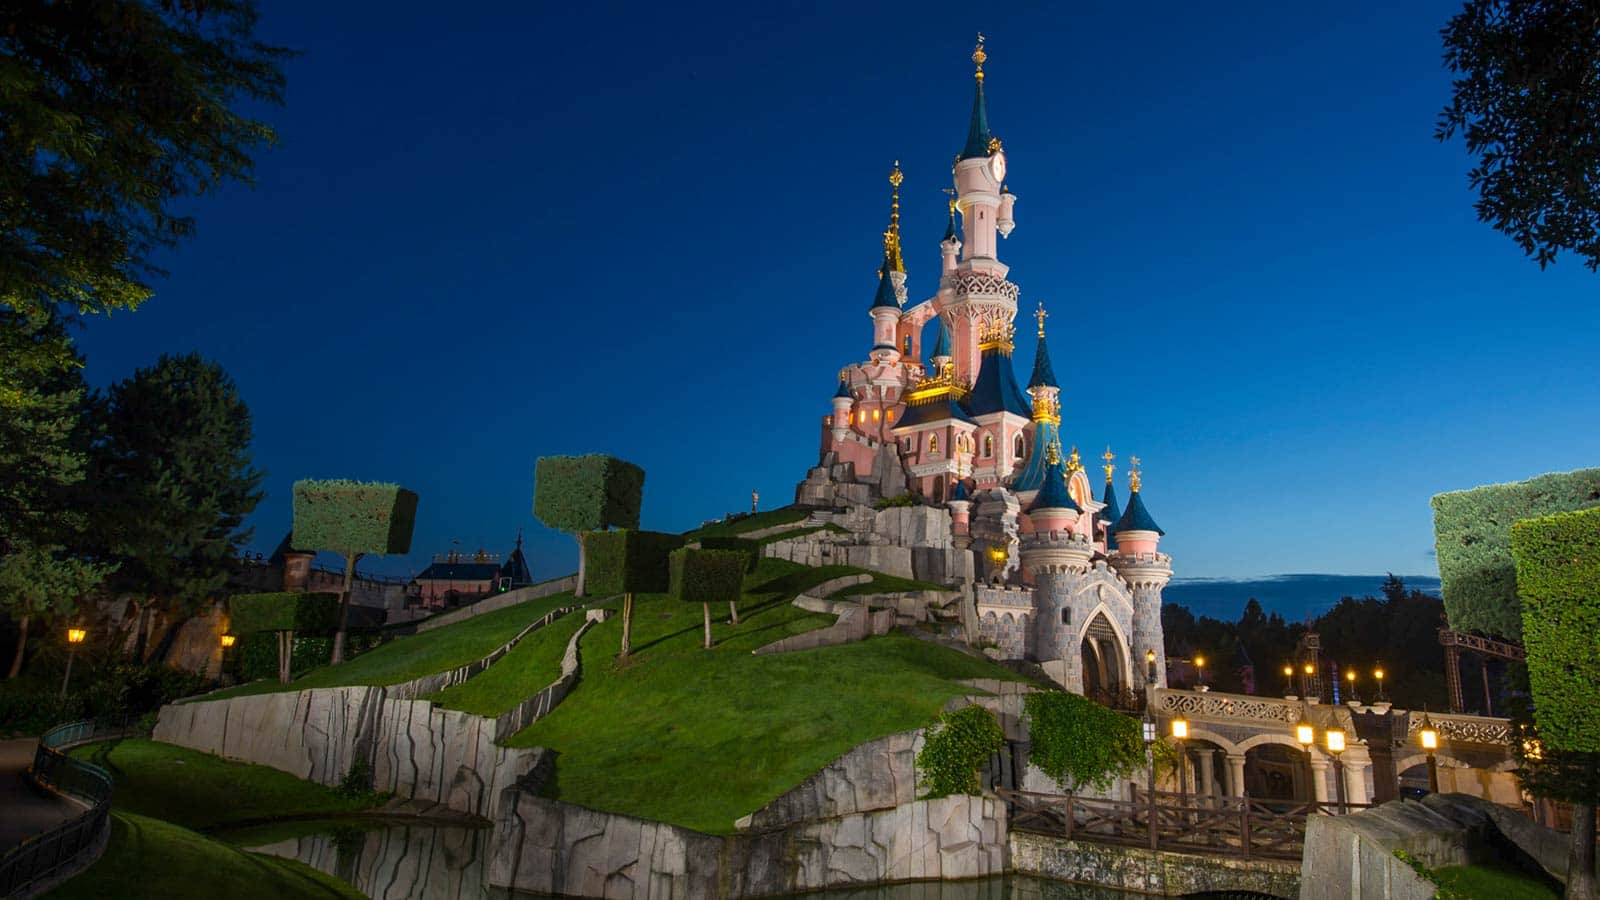 The exterior of Sleeping Beauty Castle in Disneyland Paris